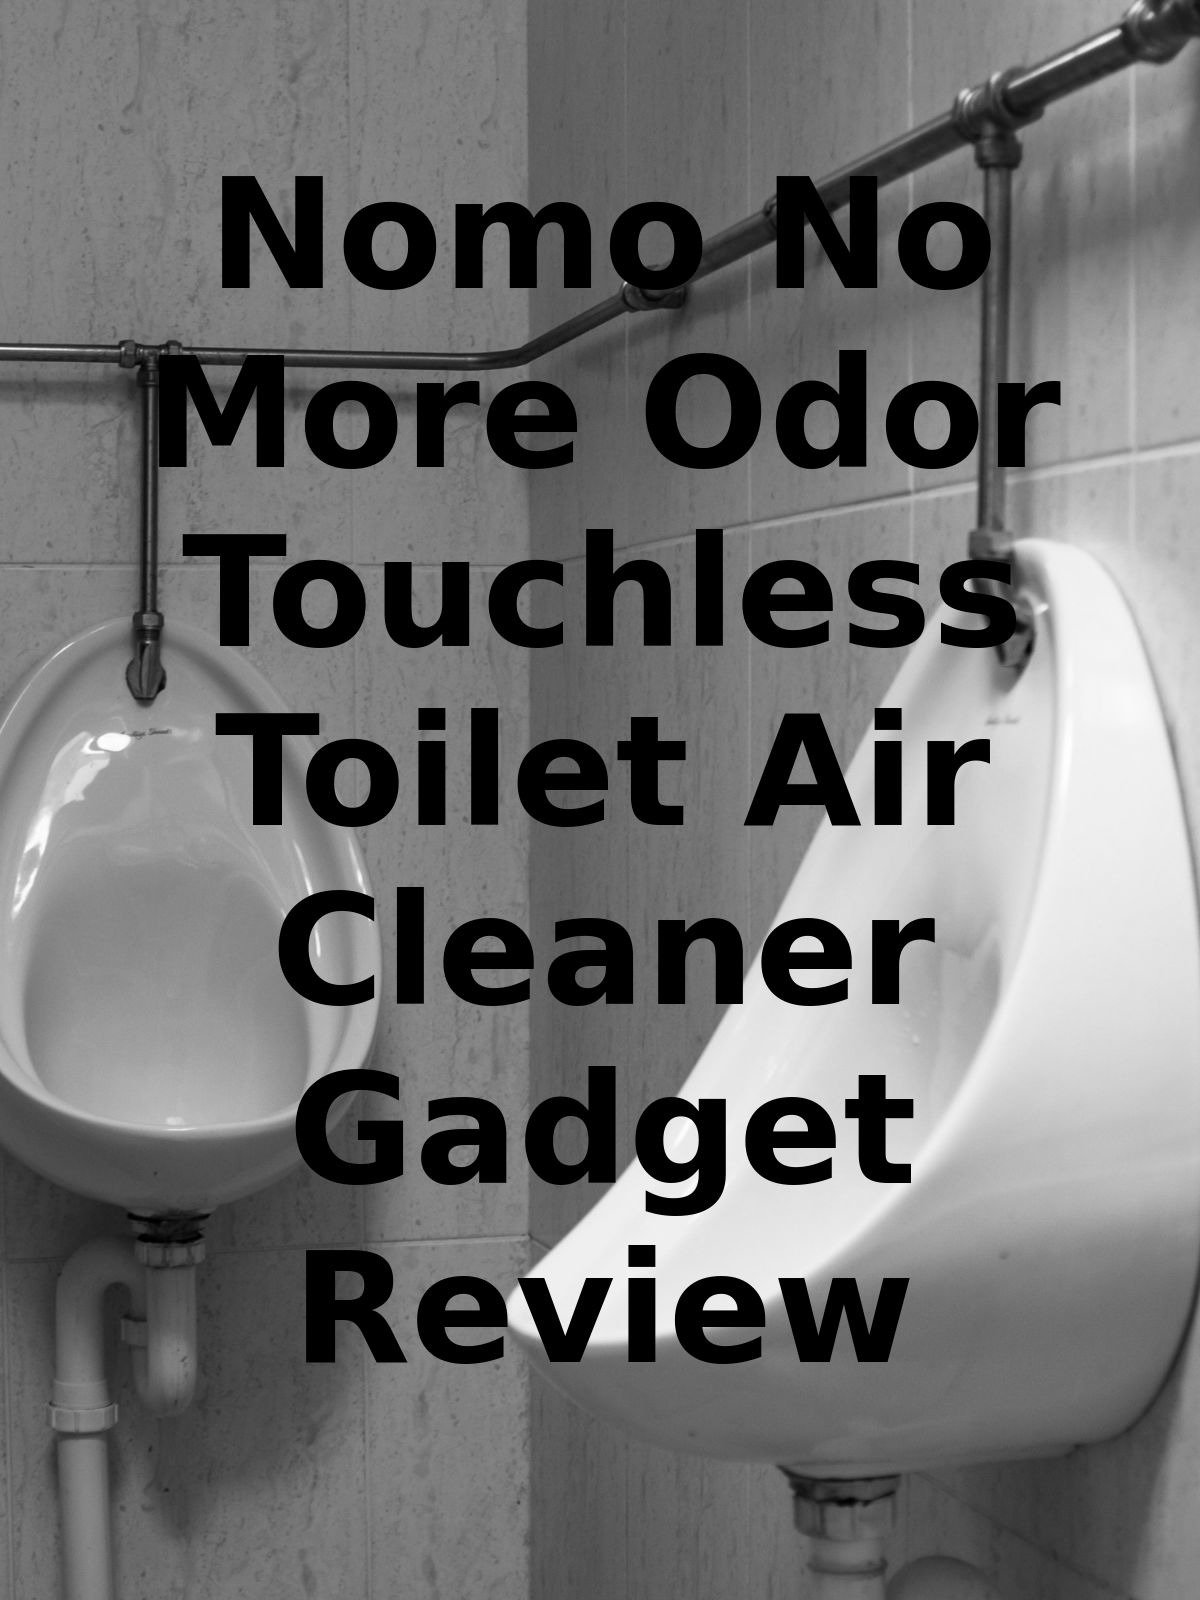 Review: Nomo No More Odor Touchless Toilet Air Cleaner Gadget Review on Amazon Prime Video UK